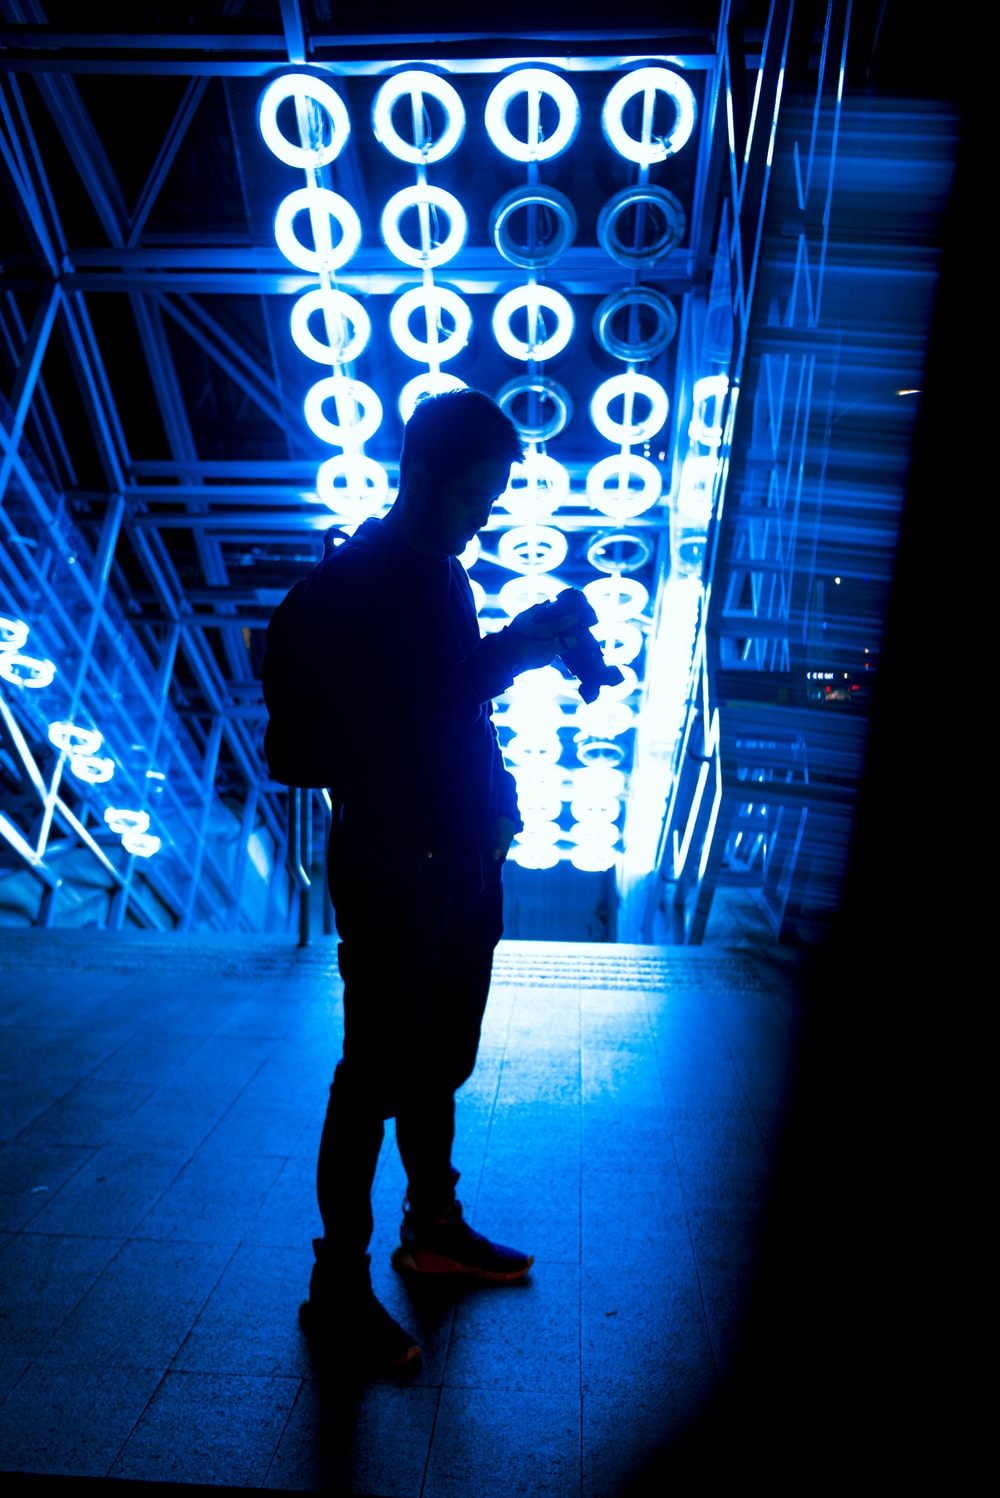 silhouette of man standing in front of lighted wall